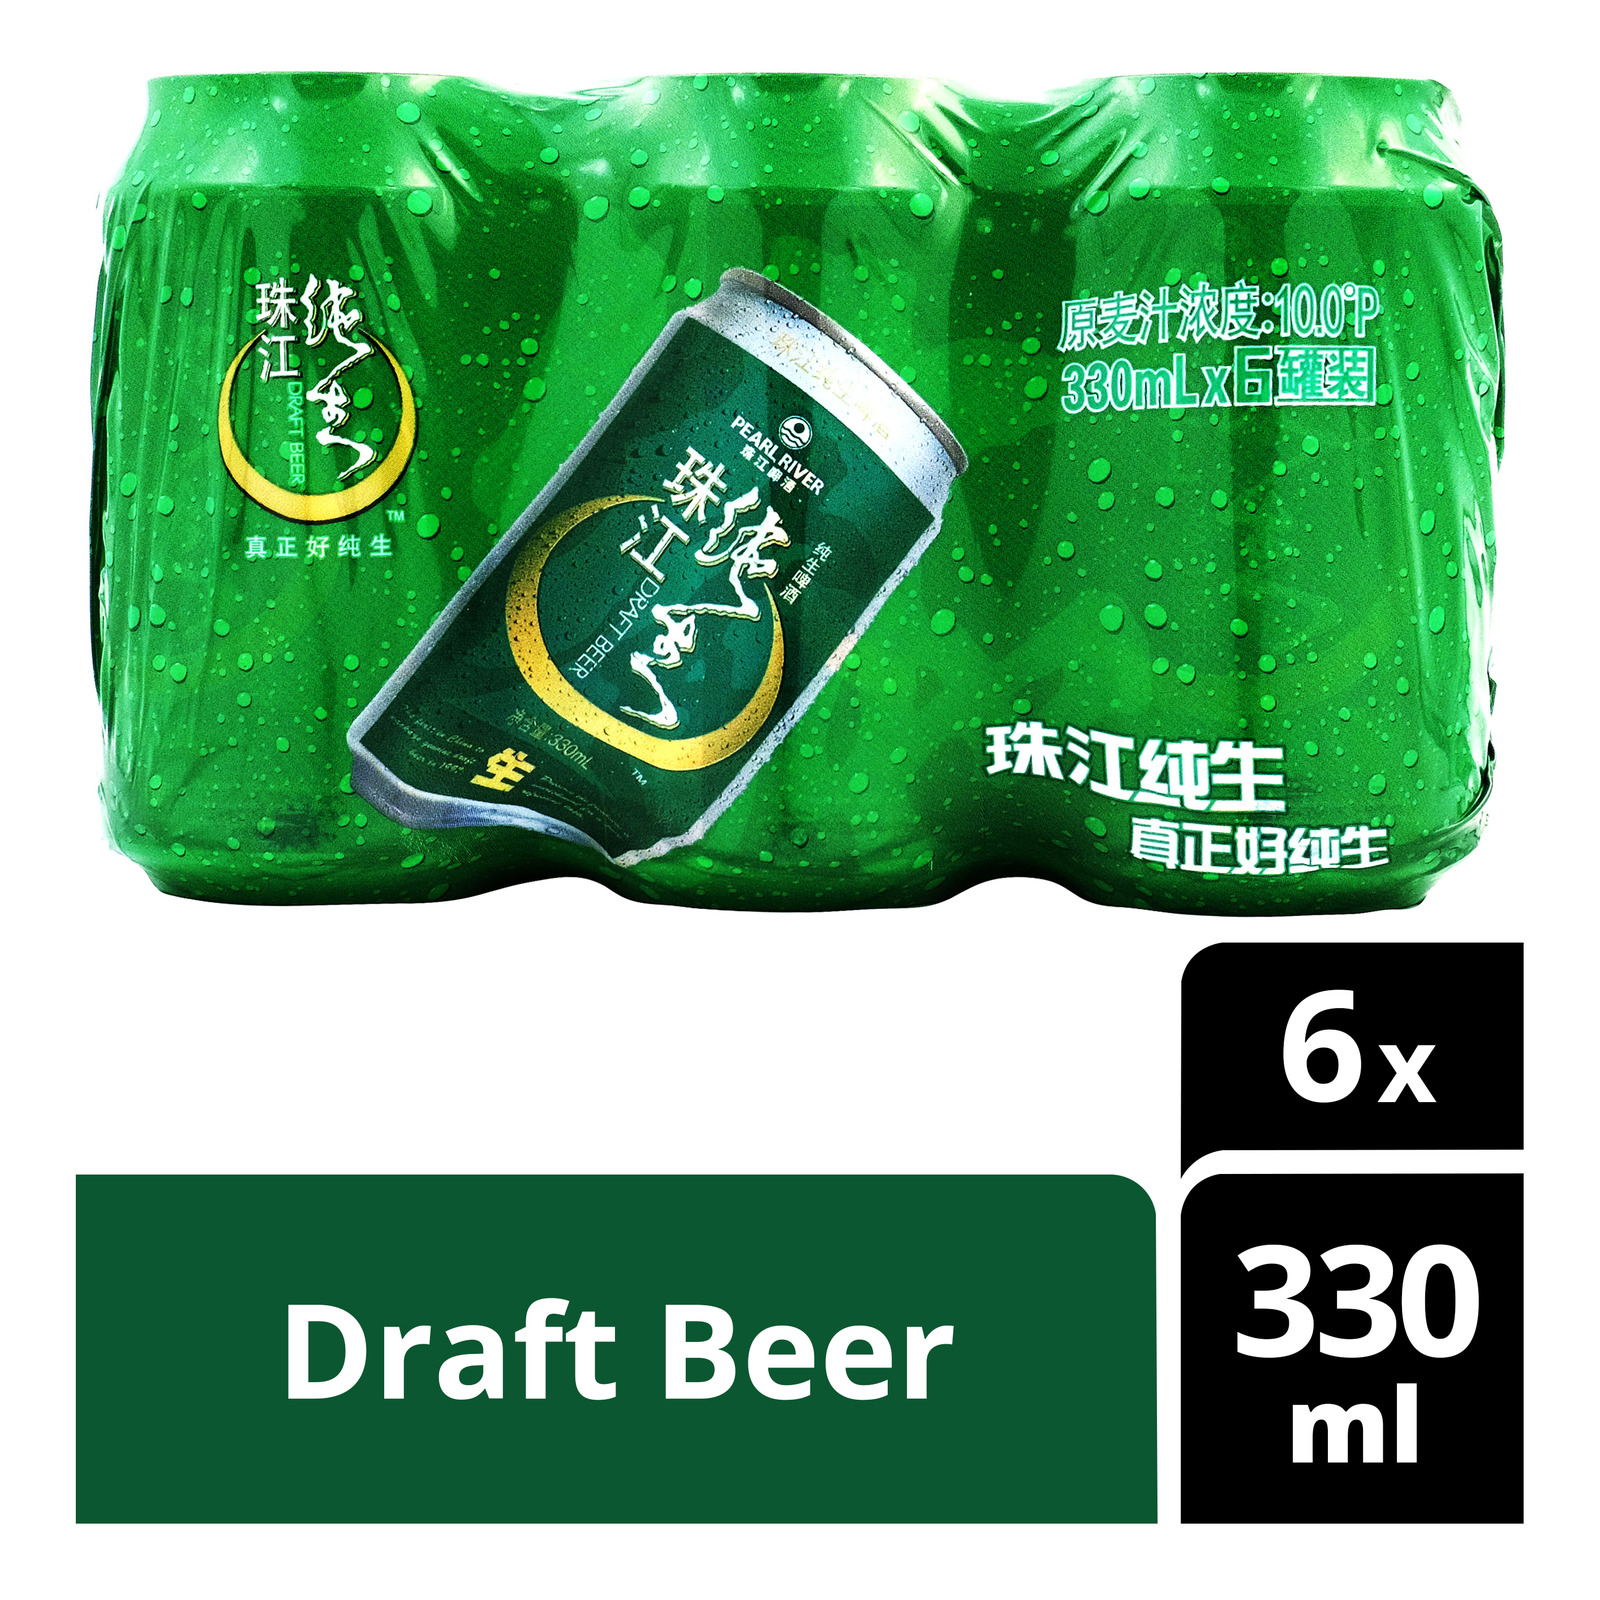 Pearl River Draft Beer ALC3.6% 6X330ML